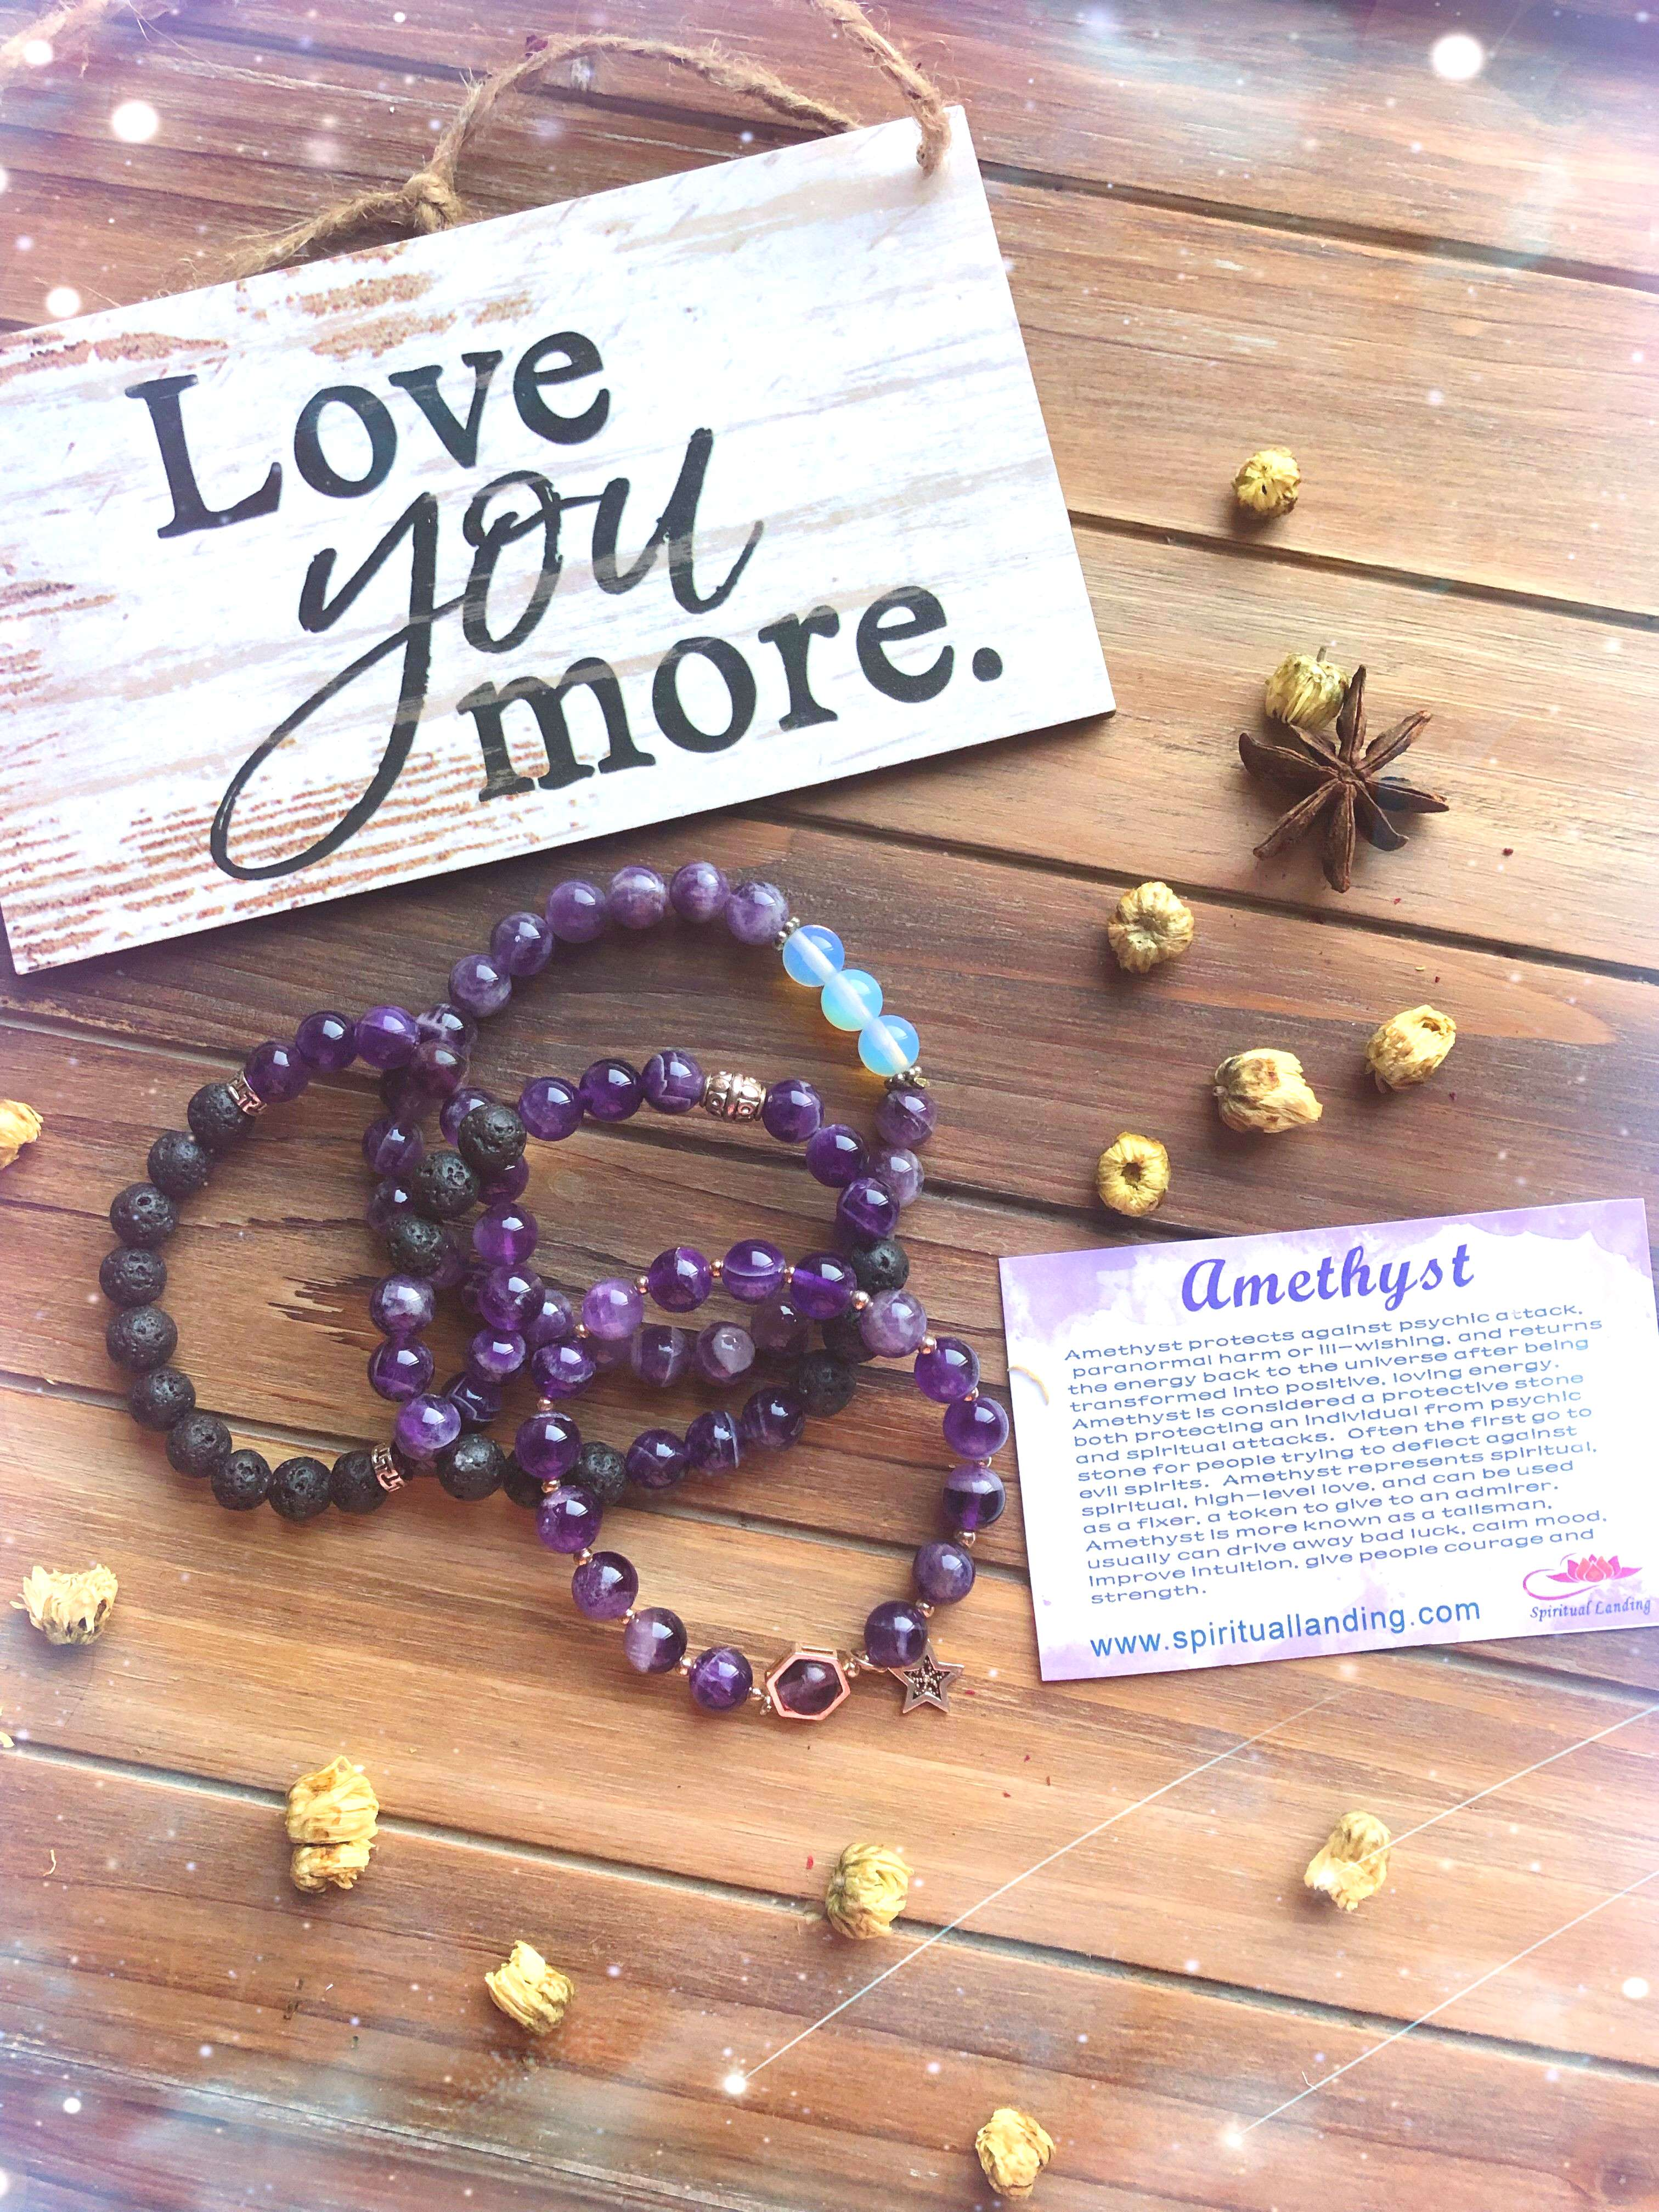 Amethyst Bracelet to amethyst meaning to amethyst steven universe Amethyst Bracelet to amethyst mea